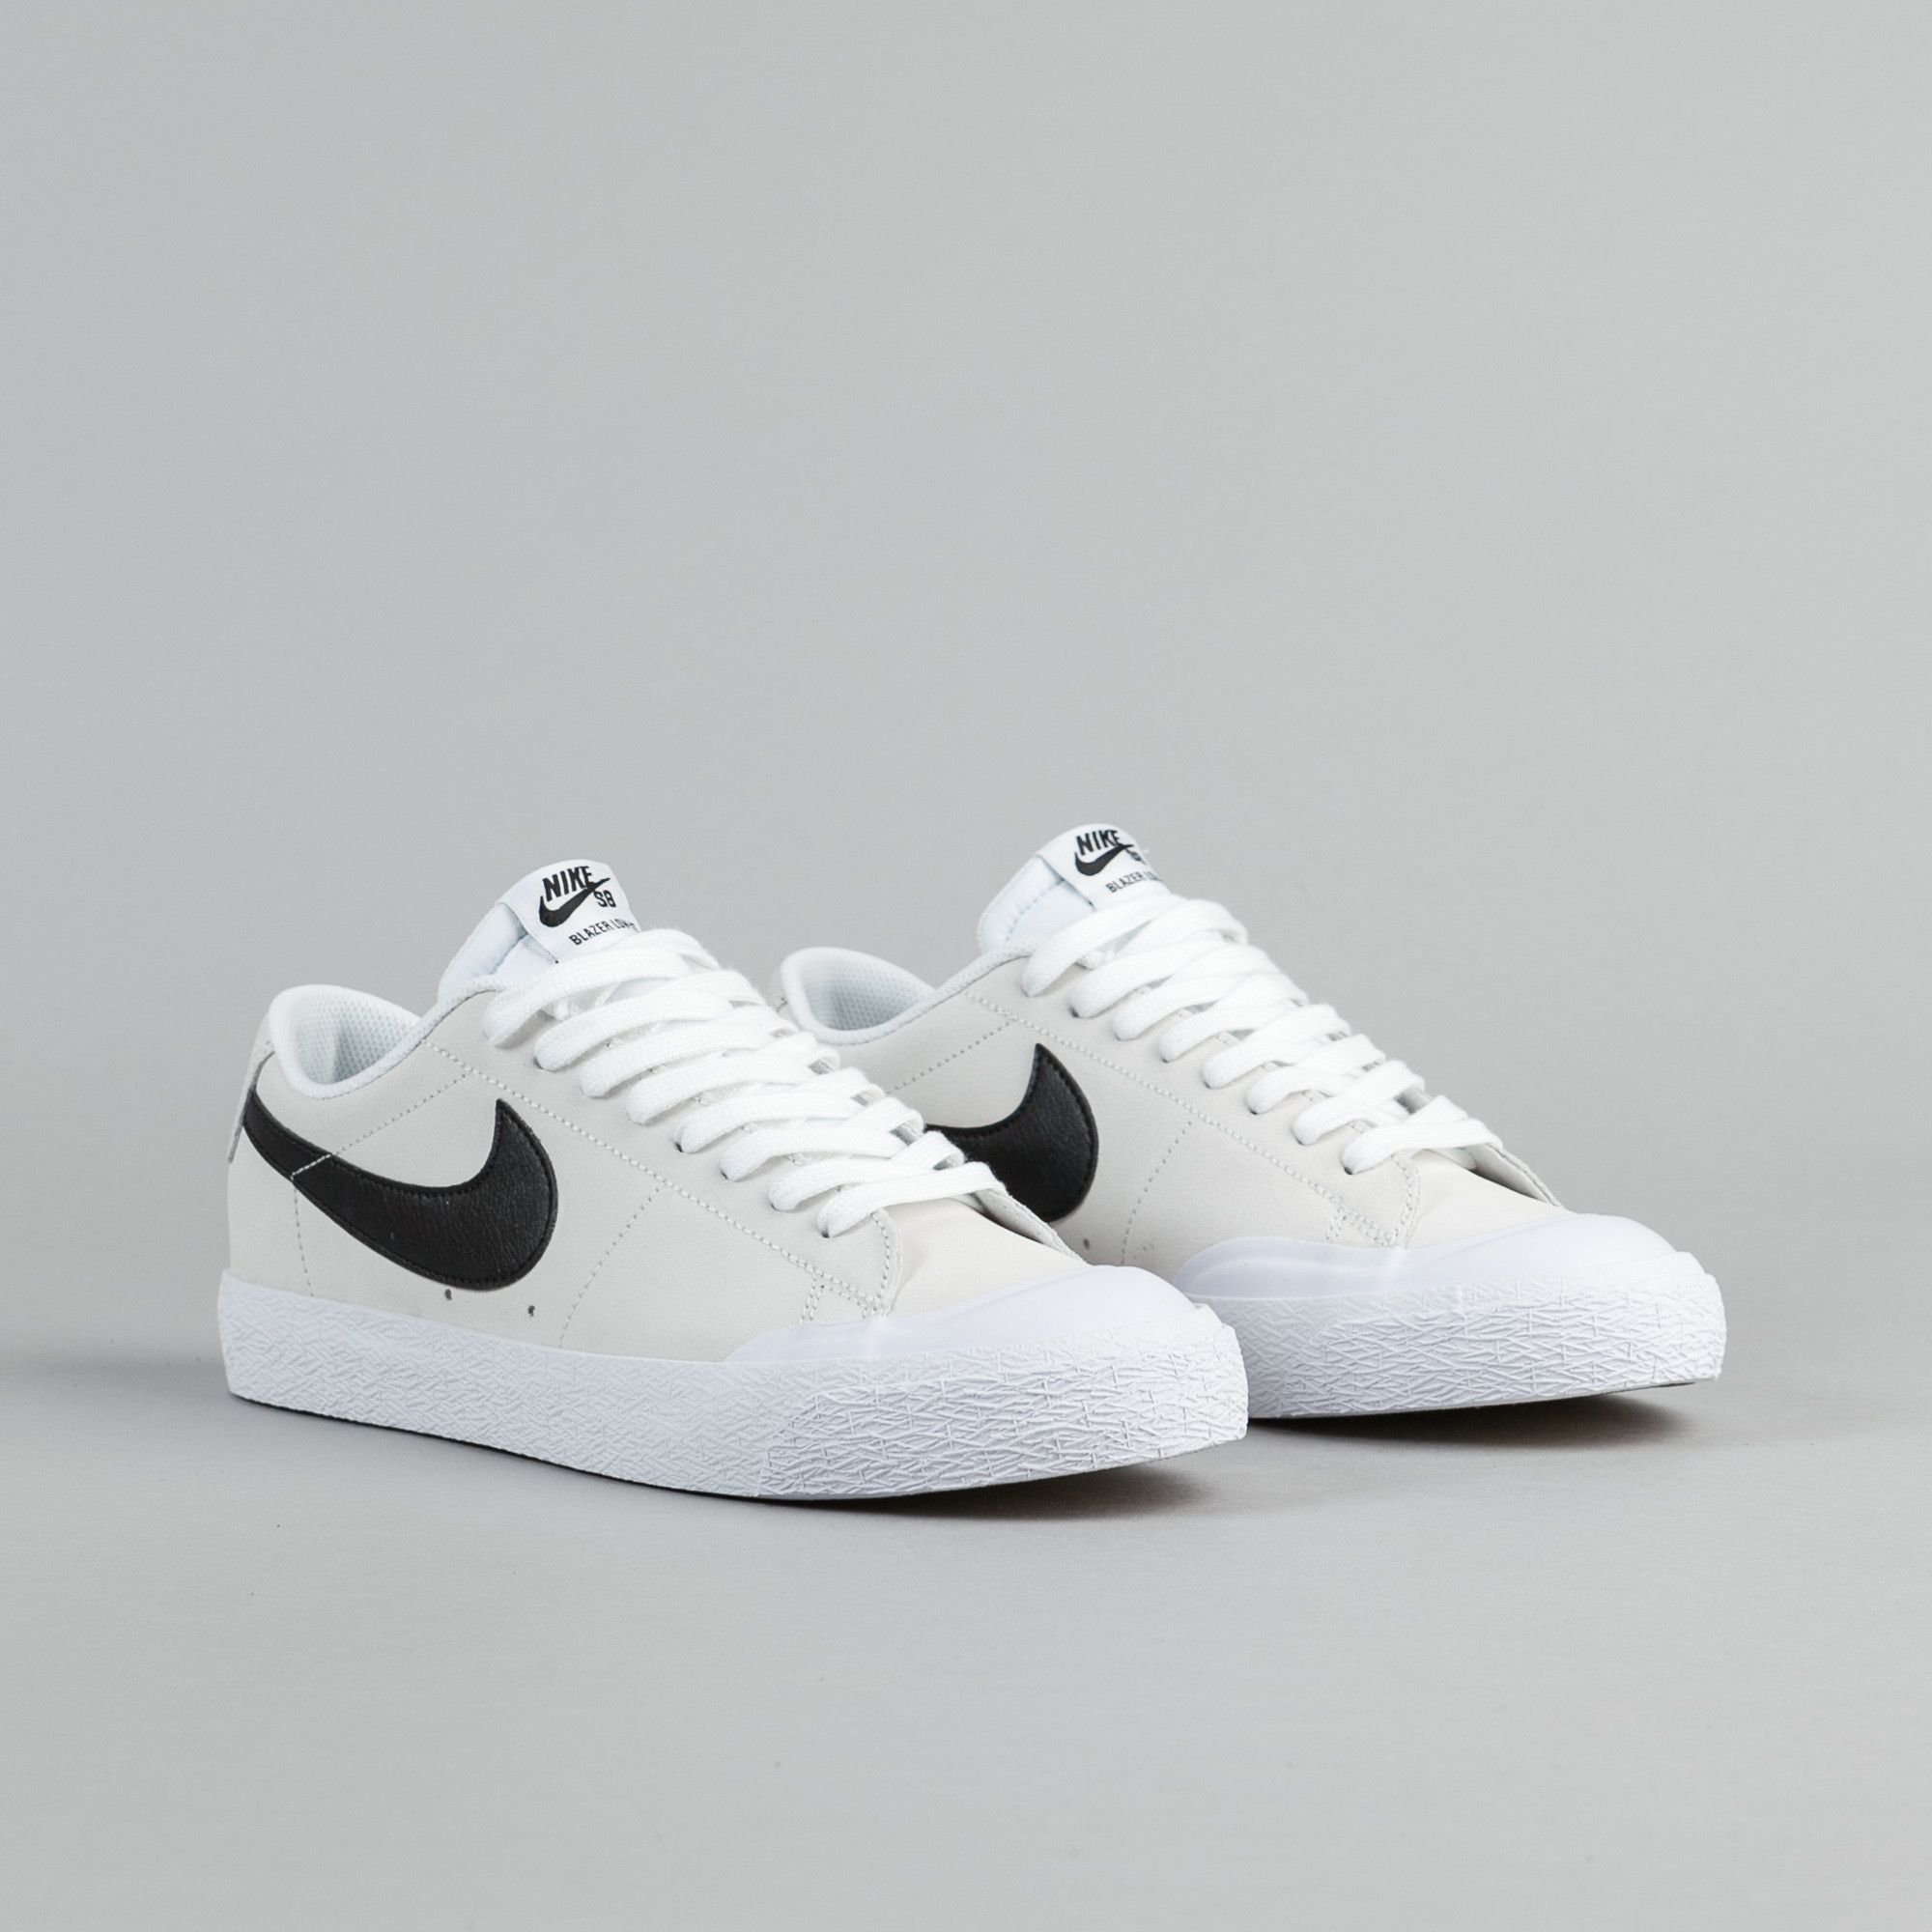 19a231b9c6fd Nike SB Blazer Low XT Shoes - Summit White / Black - White - Gum Light Brown